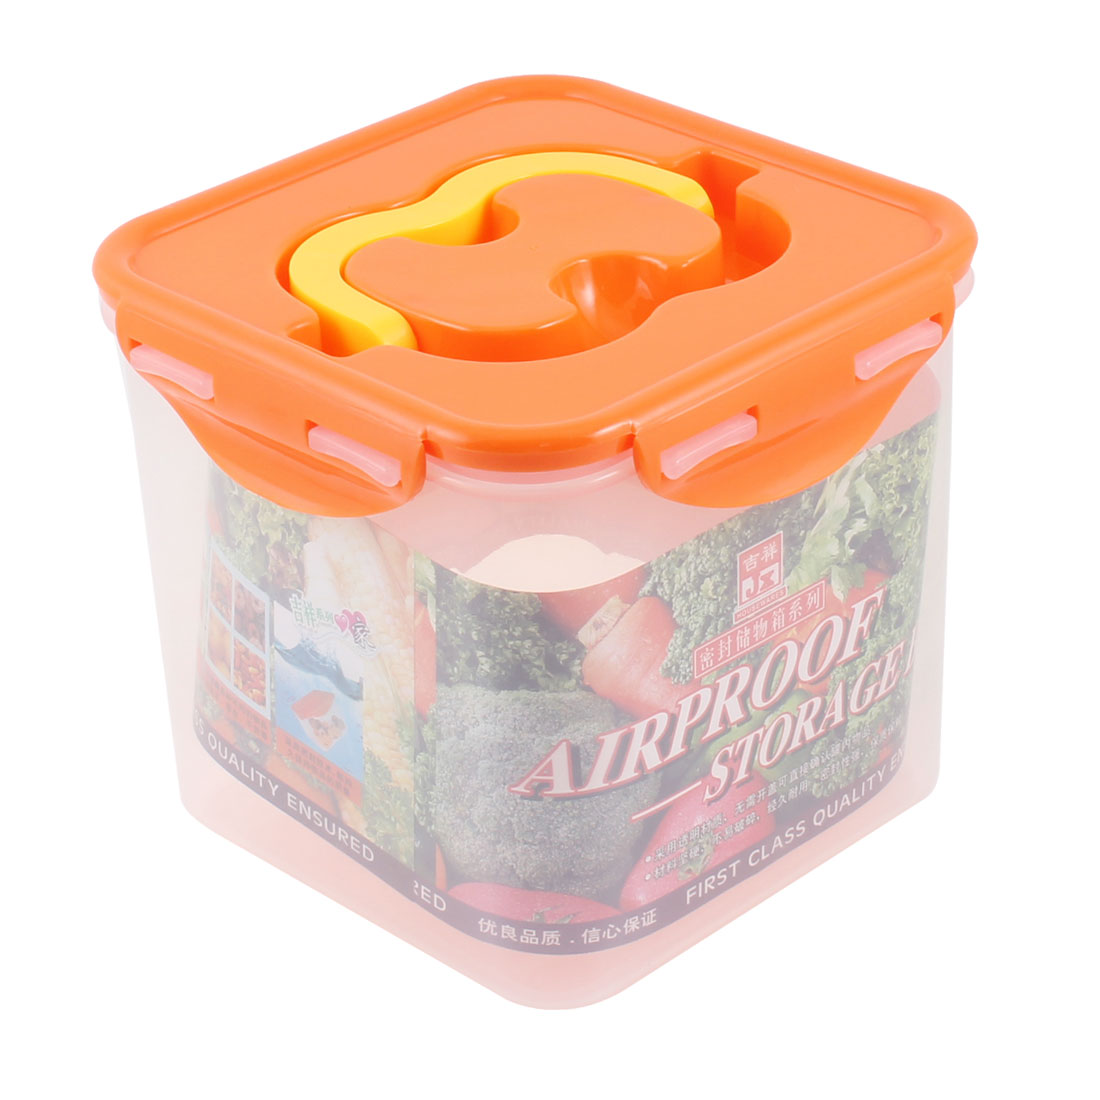 Portable Plastic Rectangle Airtight Container Nuts Storage Box Case Clear Orange